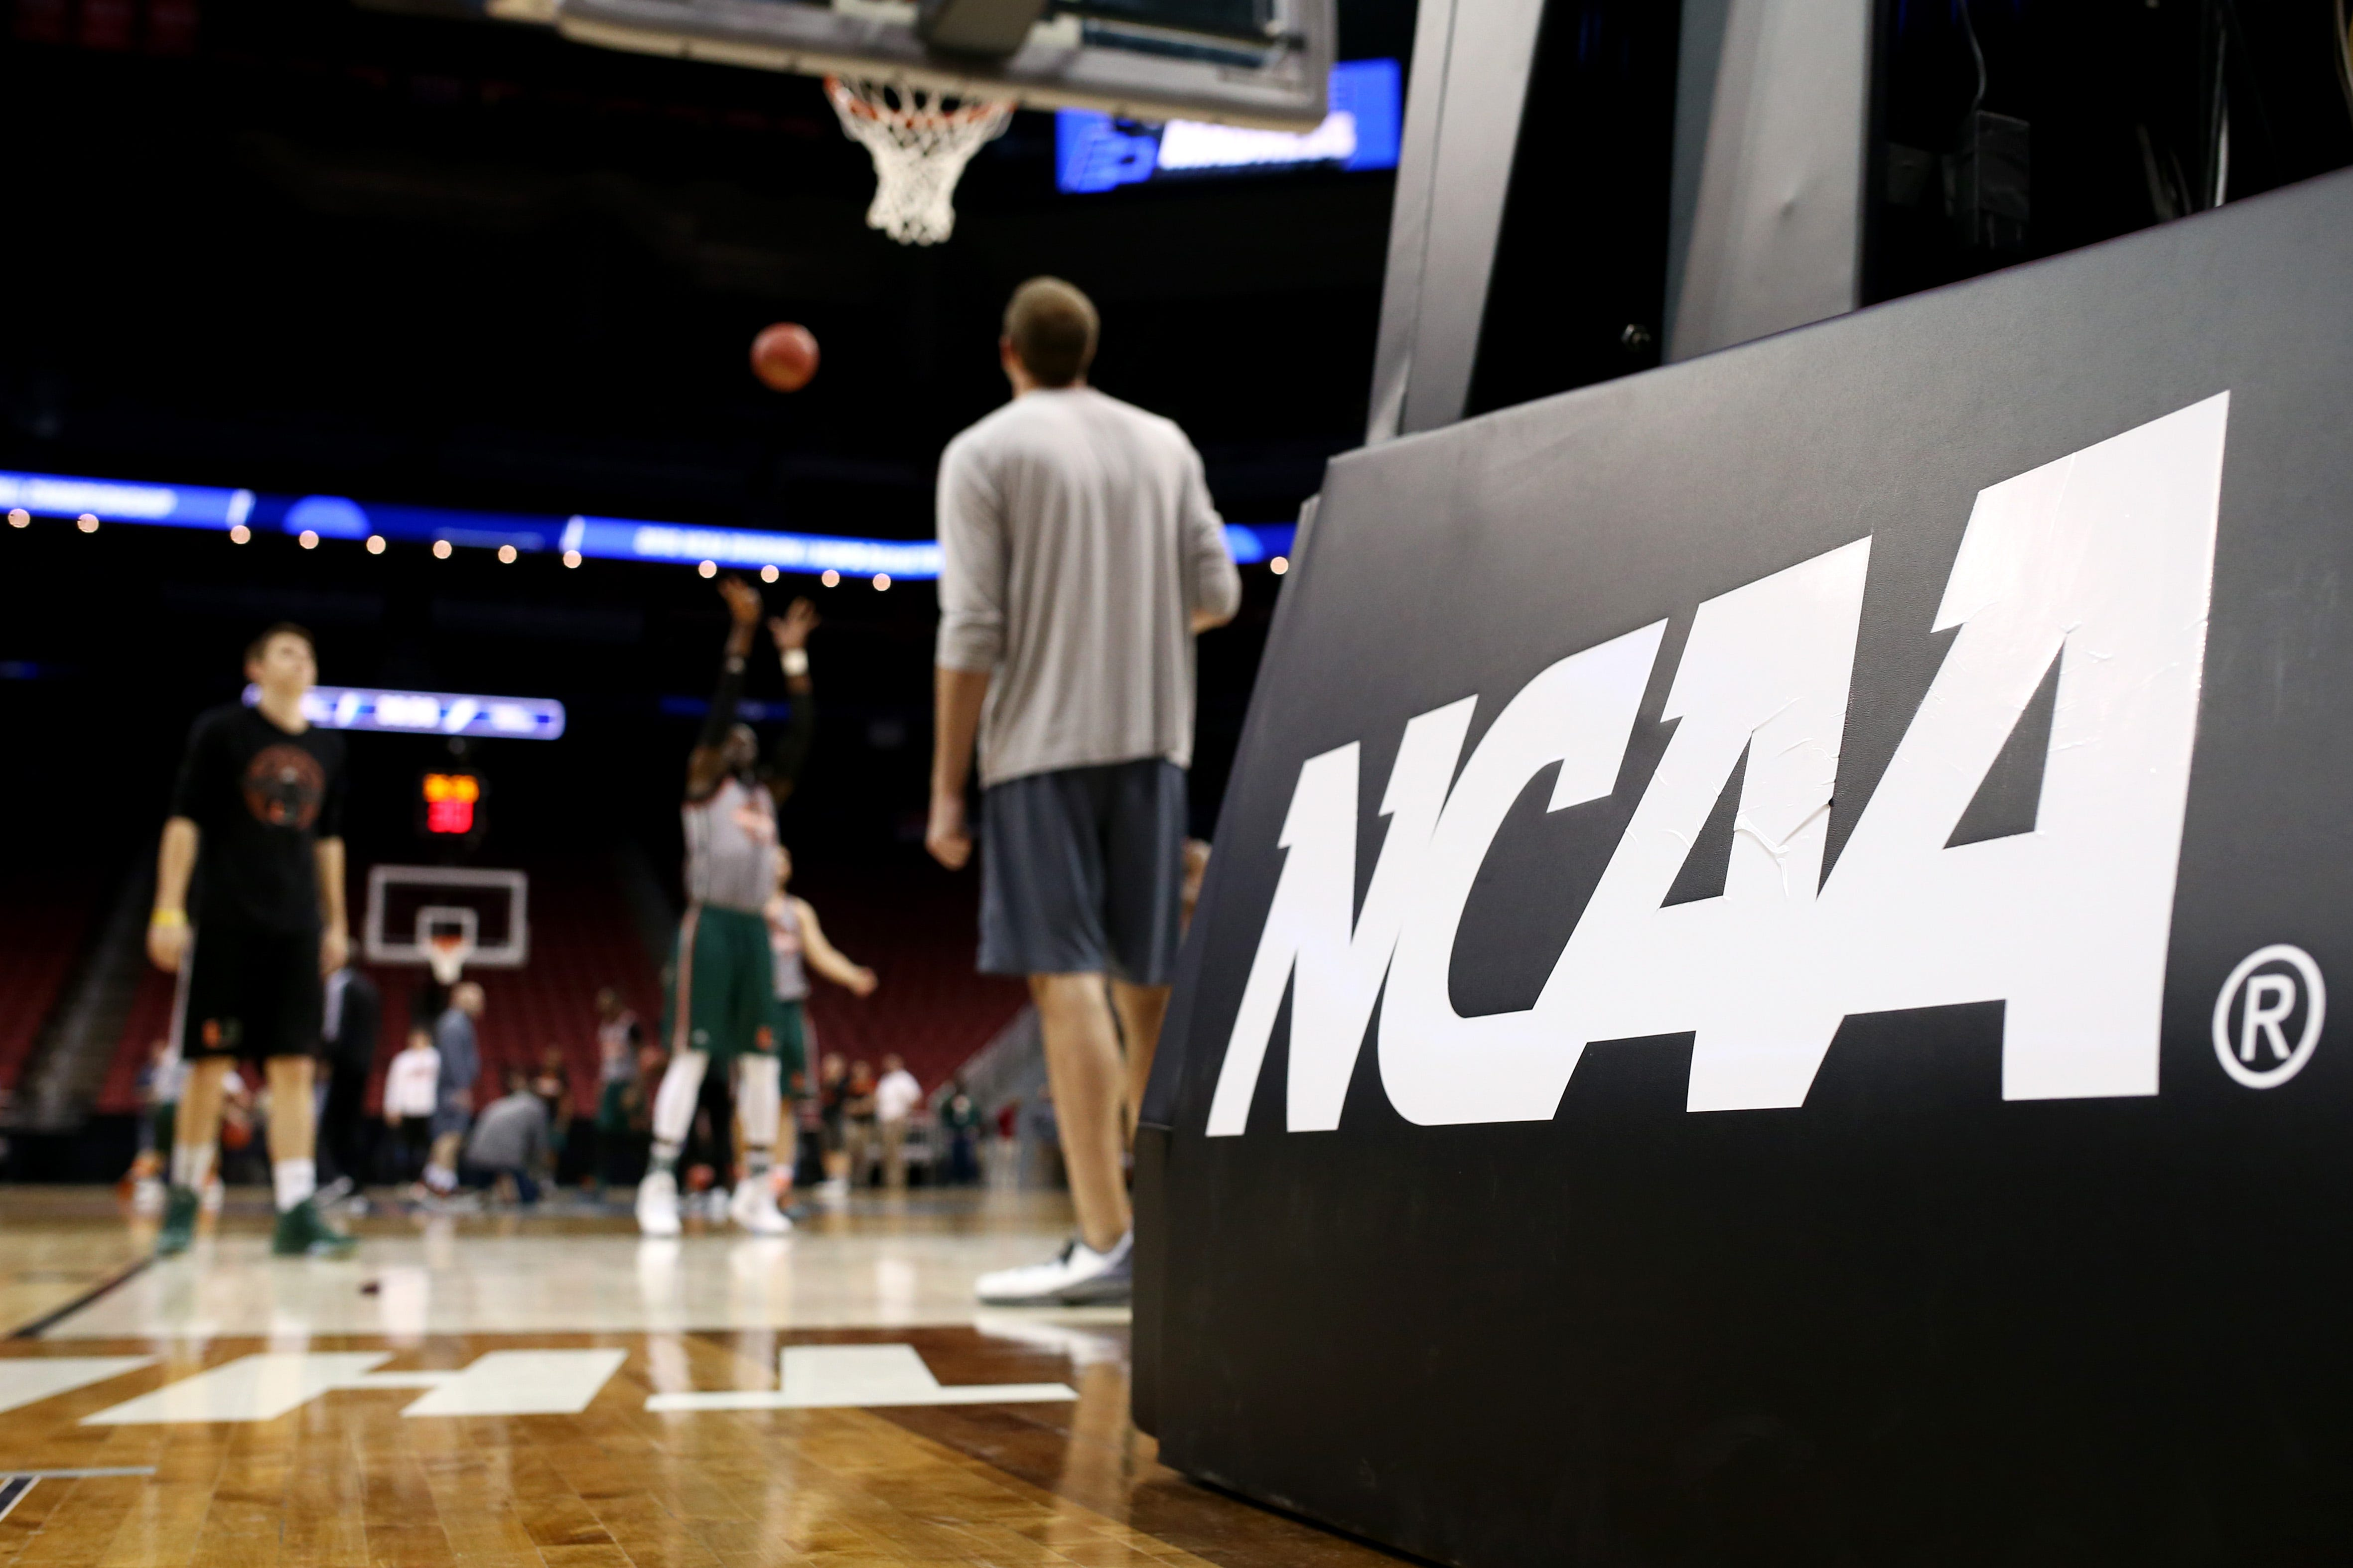 Creighton men's basketball program given two years probation by NCAA